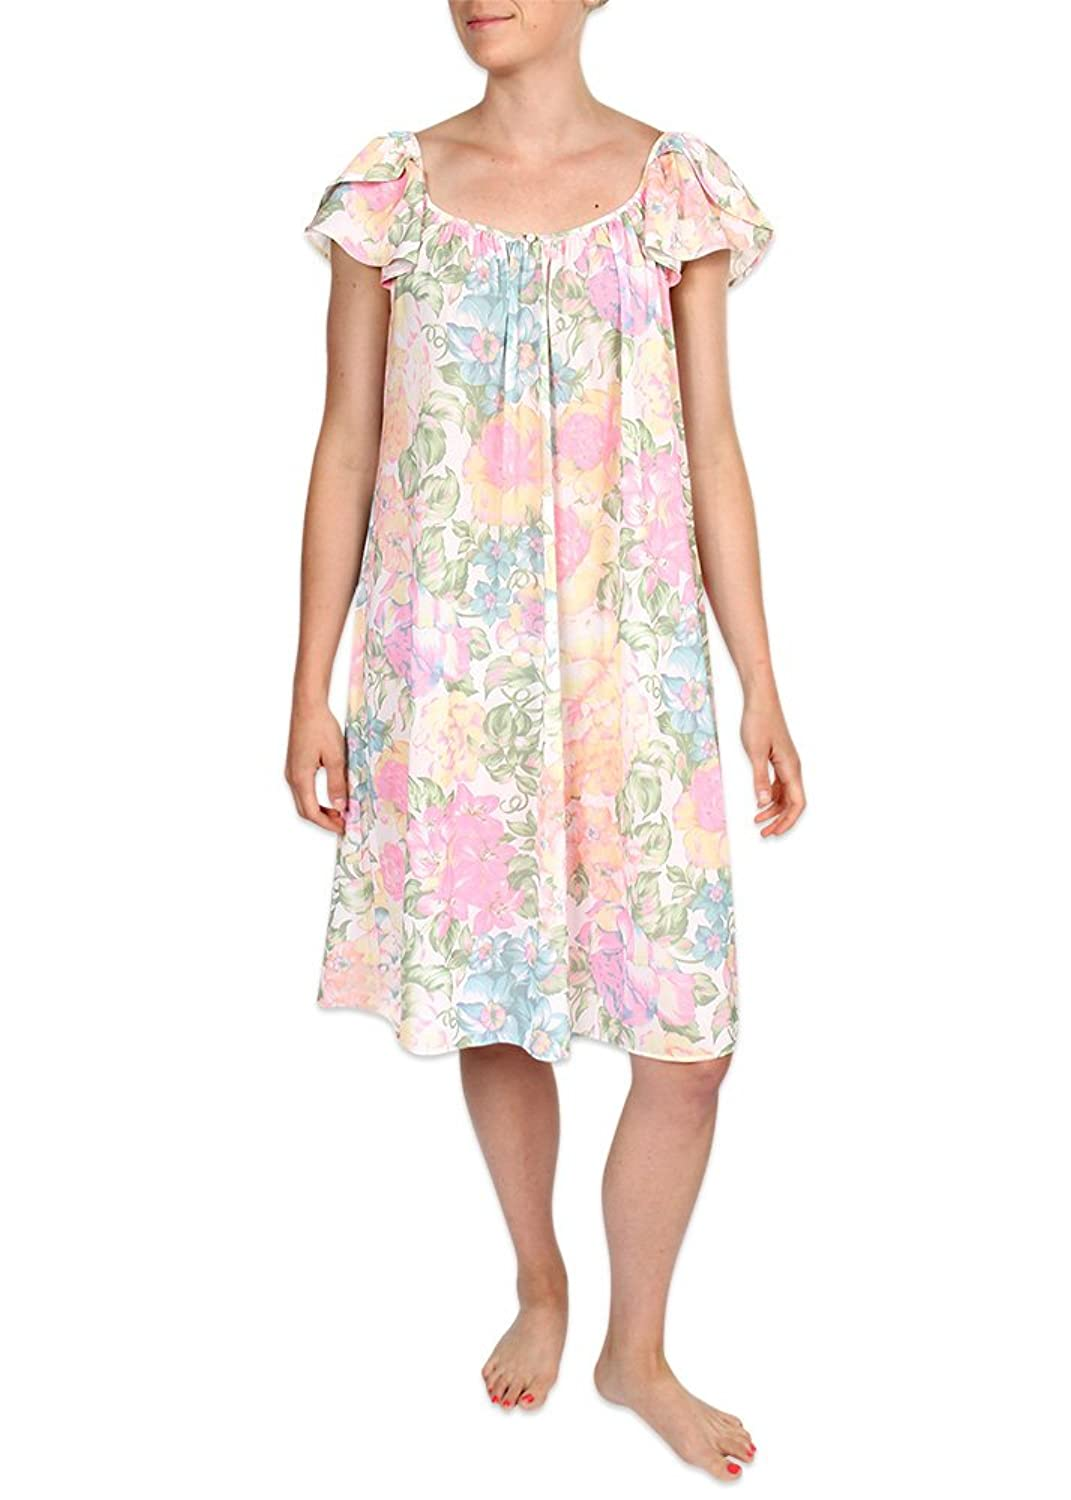 Heavenly Bodies Tricot Nightgown, Short Sleep Dress With Pastel Floral Print Comfortable Lightweight Fabric, Flutter Sleeves